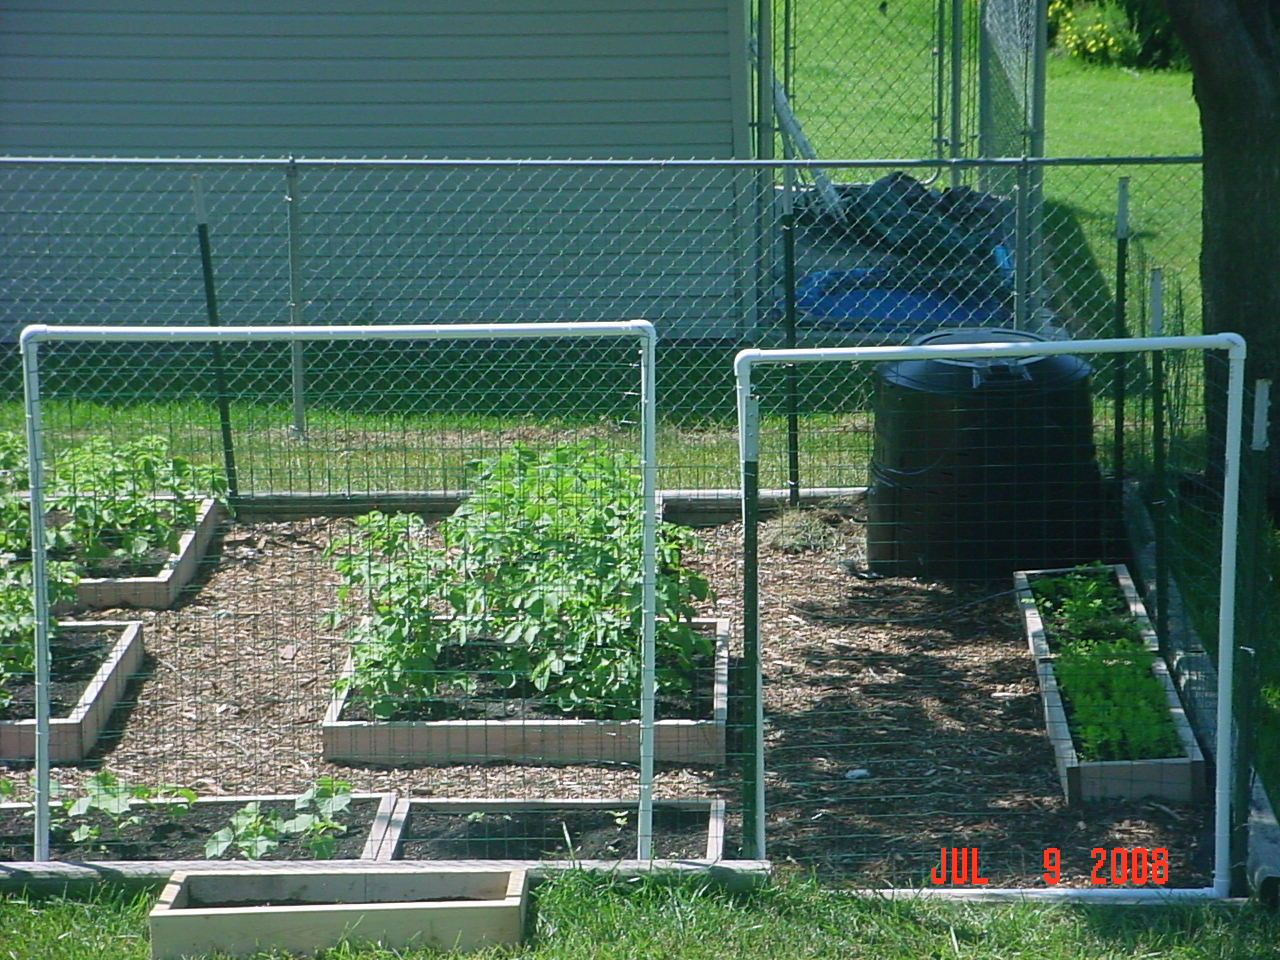 Building A Trellis And Garden Gate Out PVC For Raised Beds; I Used PVC,